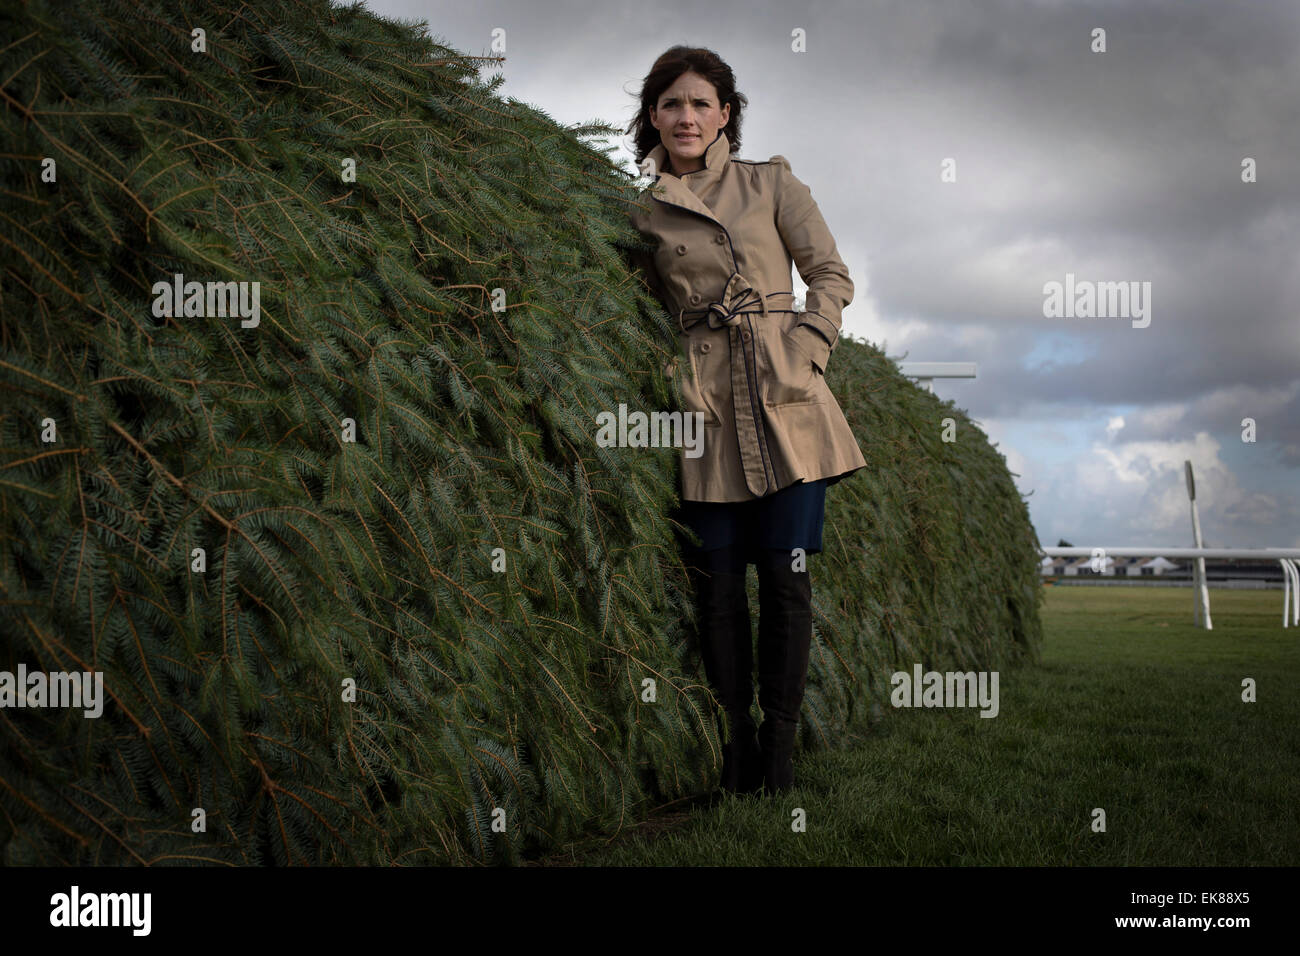 Irish jockey Katie Walsh, pictured next to the Chair, one of the most testing fences on the Grand National course Stock Photo